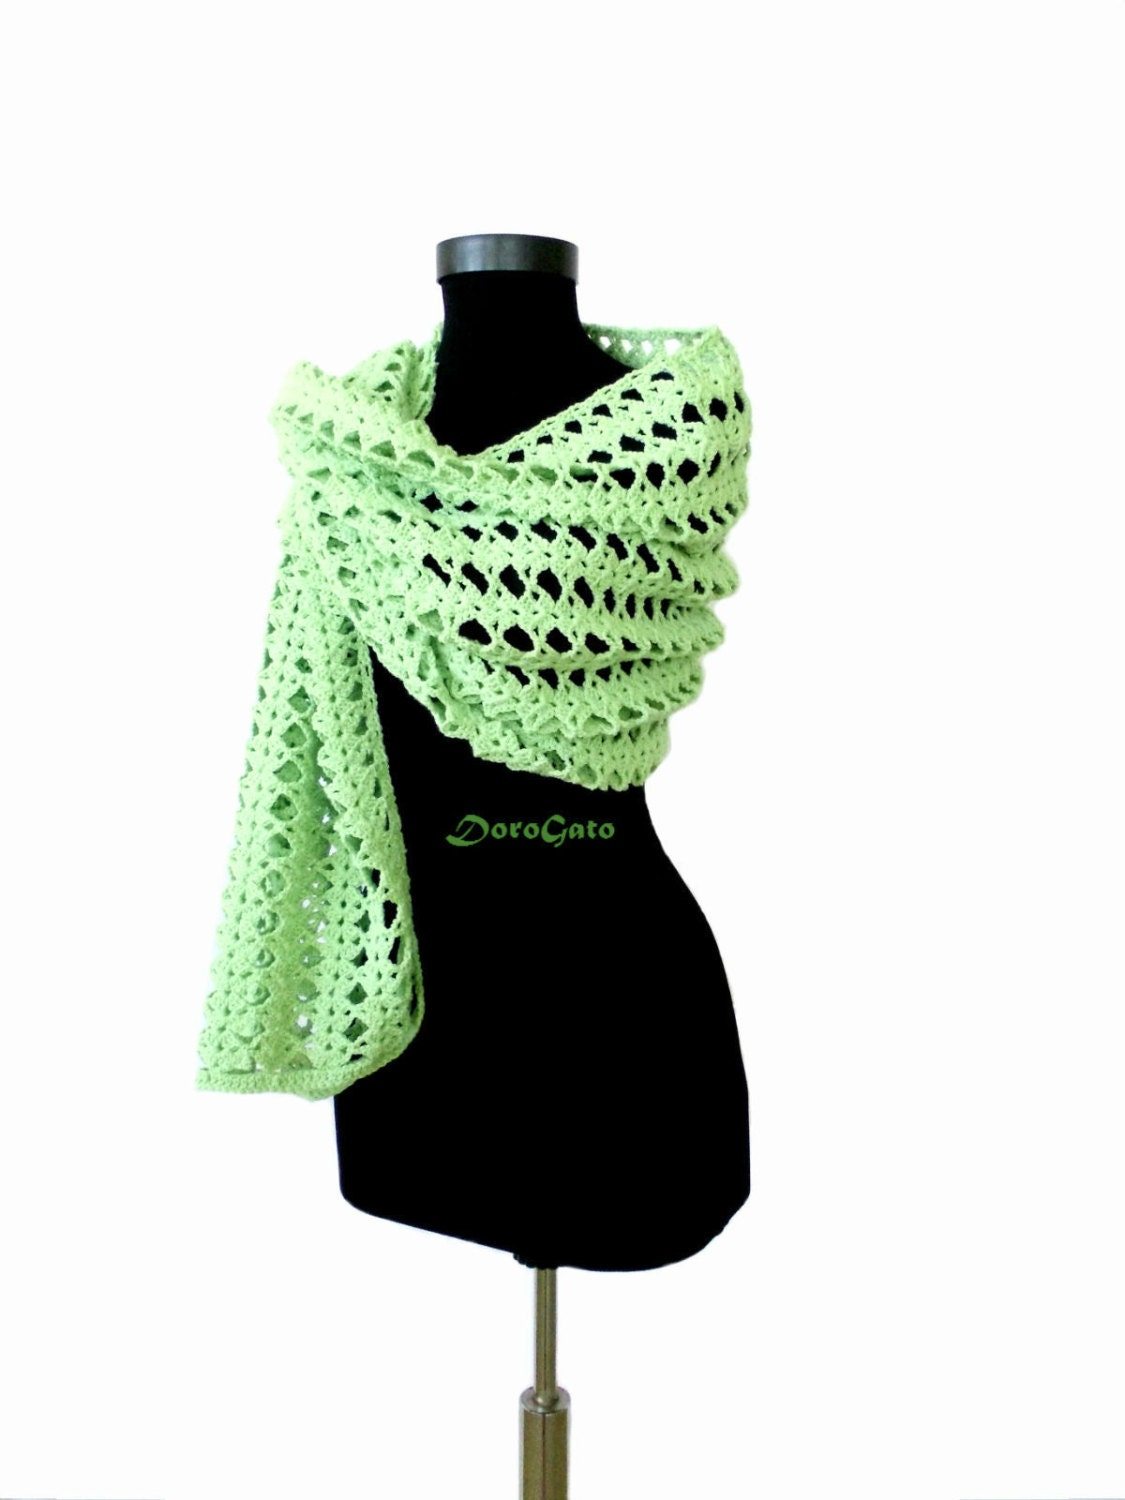 Easy Crochet Shawl Patterns Beginners : Easy crochet shawl pattern beginner Crochet pattern shawl